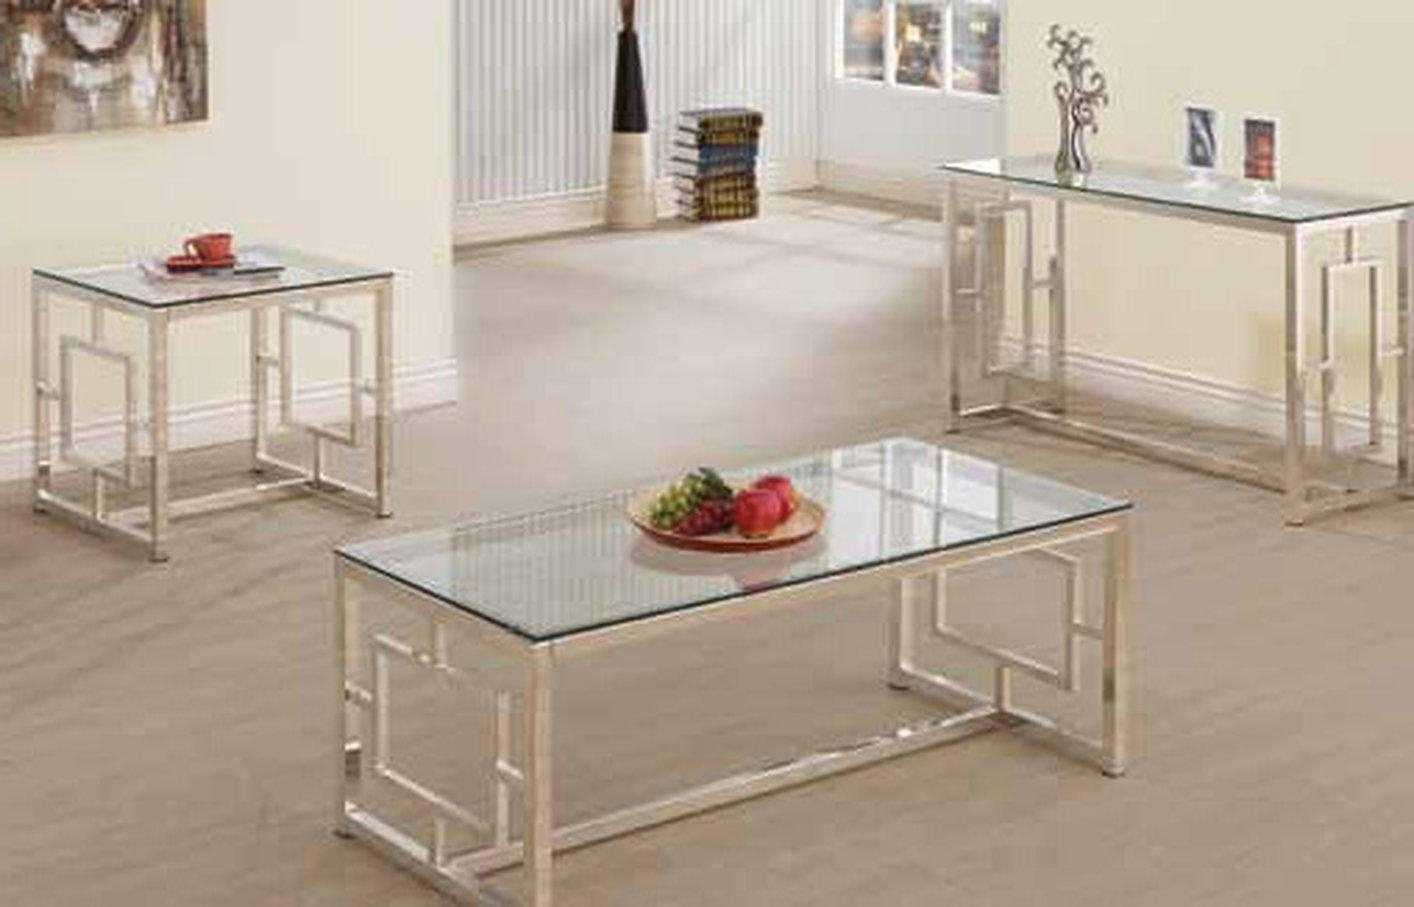 Glass Sofa Table Indoor | Med Art Home Design Posters Regarding Metal Glass Sofa Tables (View 12 of 22)